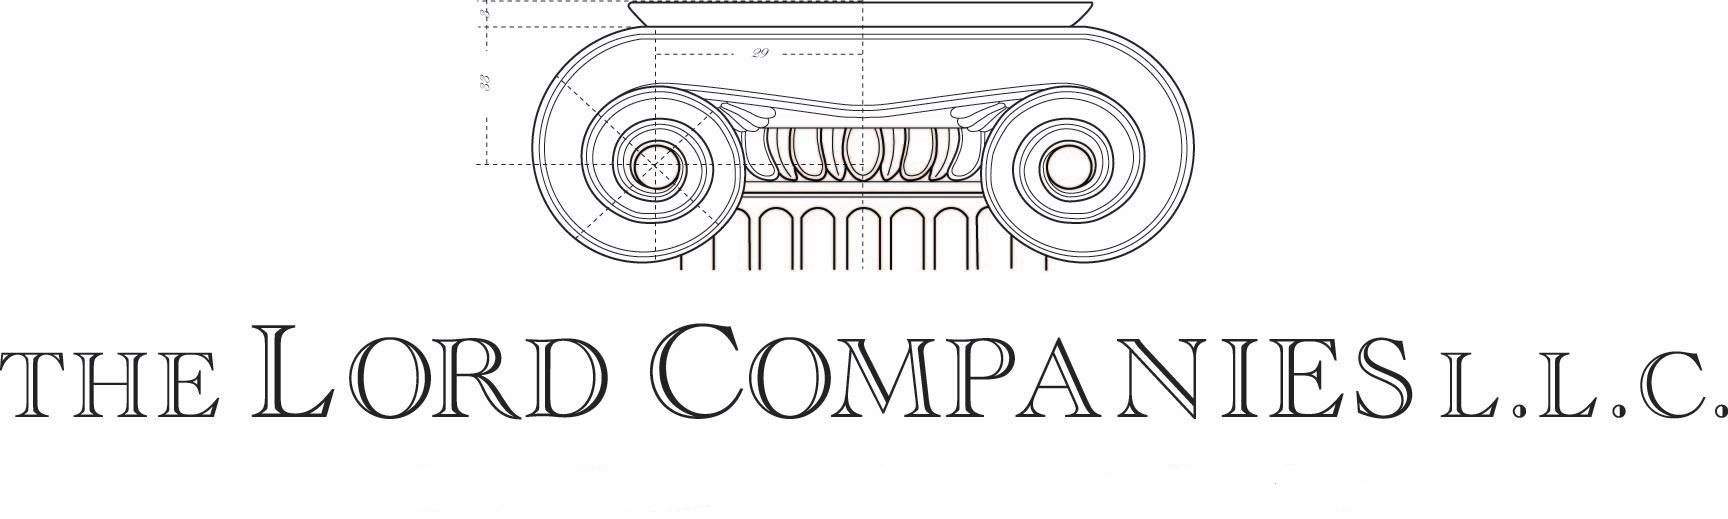 The Lord Companies, LLC